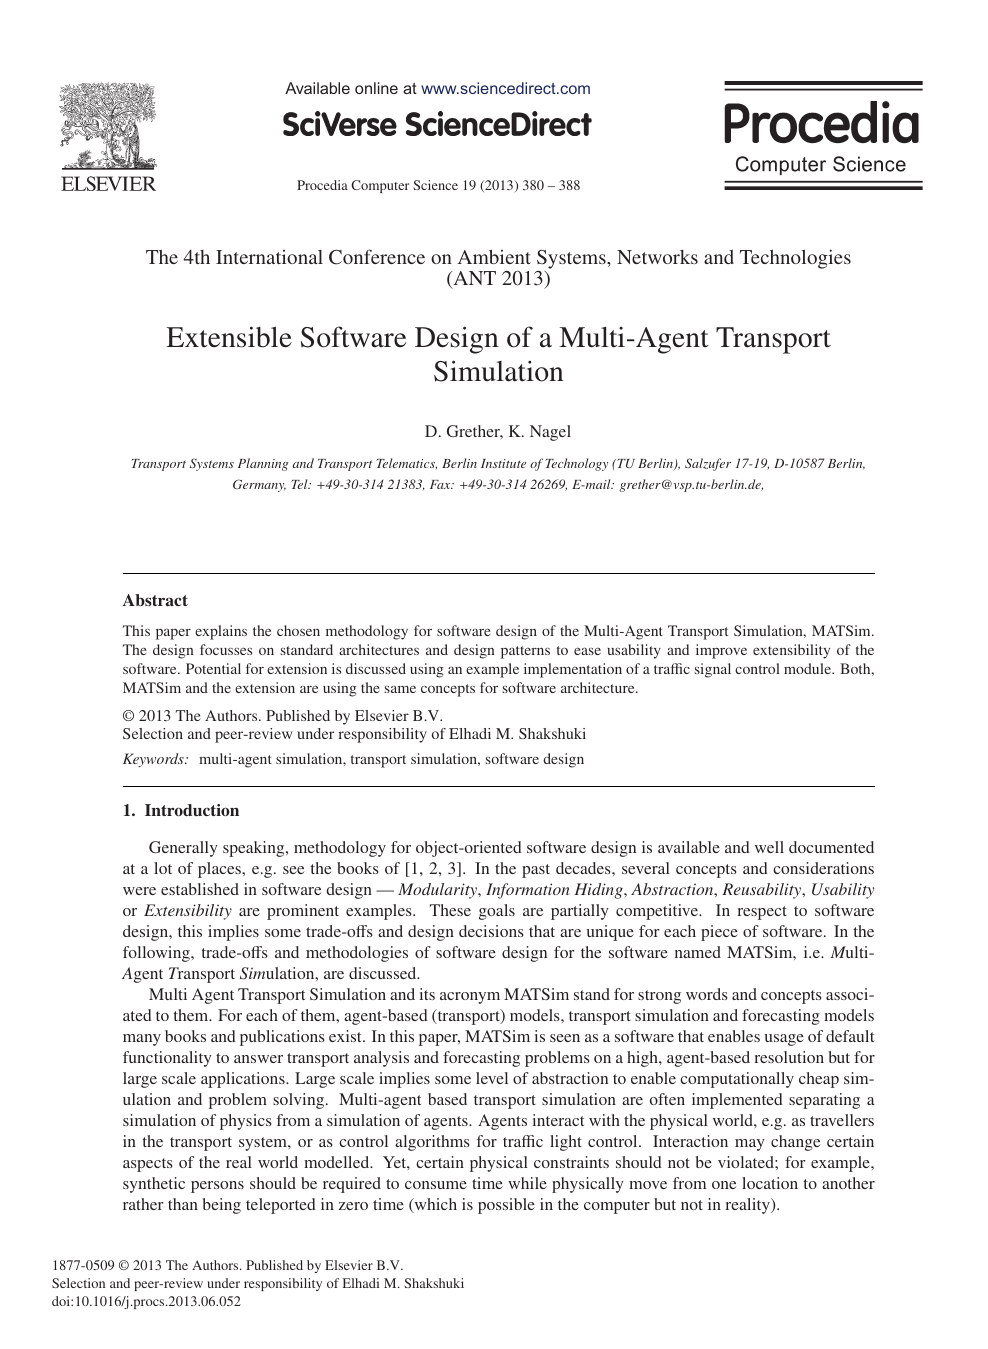 Extensible Software Design of a Multi-Agent Transport